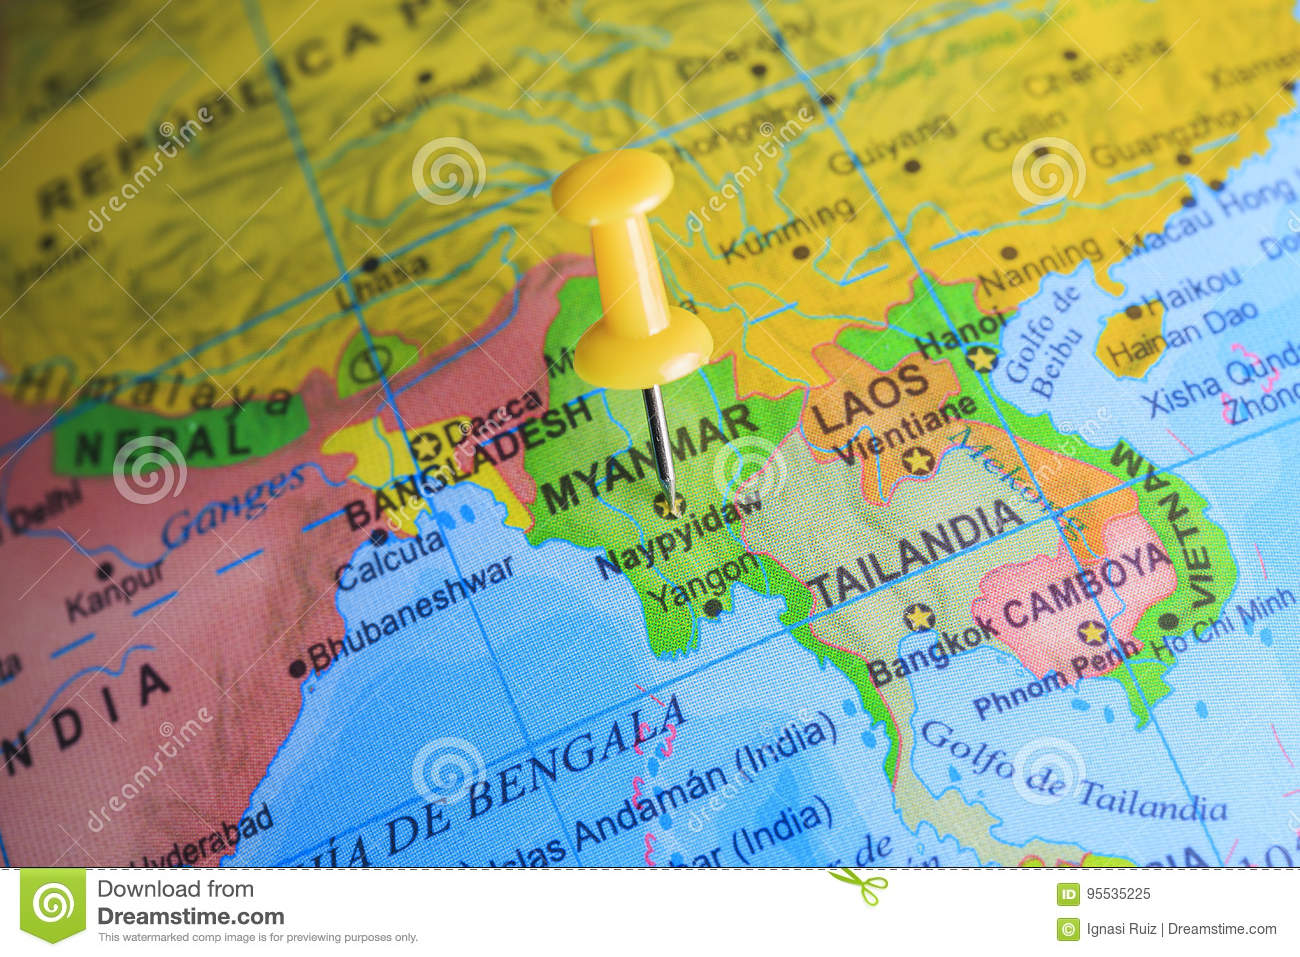 Myanmar On Map Of Asia.Myanmar Pinned On A Map Of Asia Stock Image Image Of France